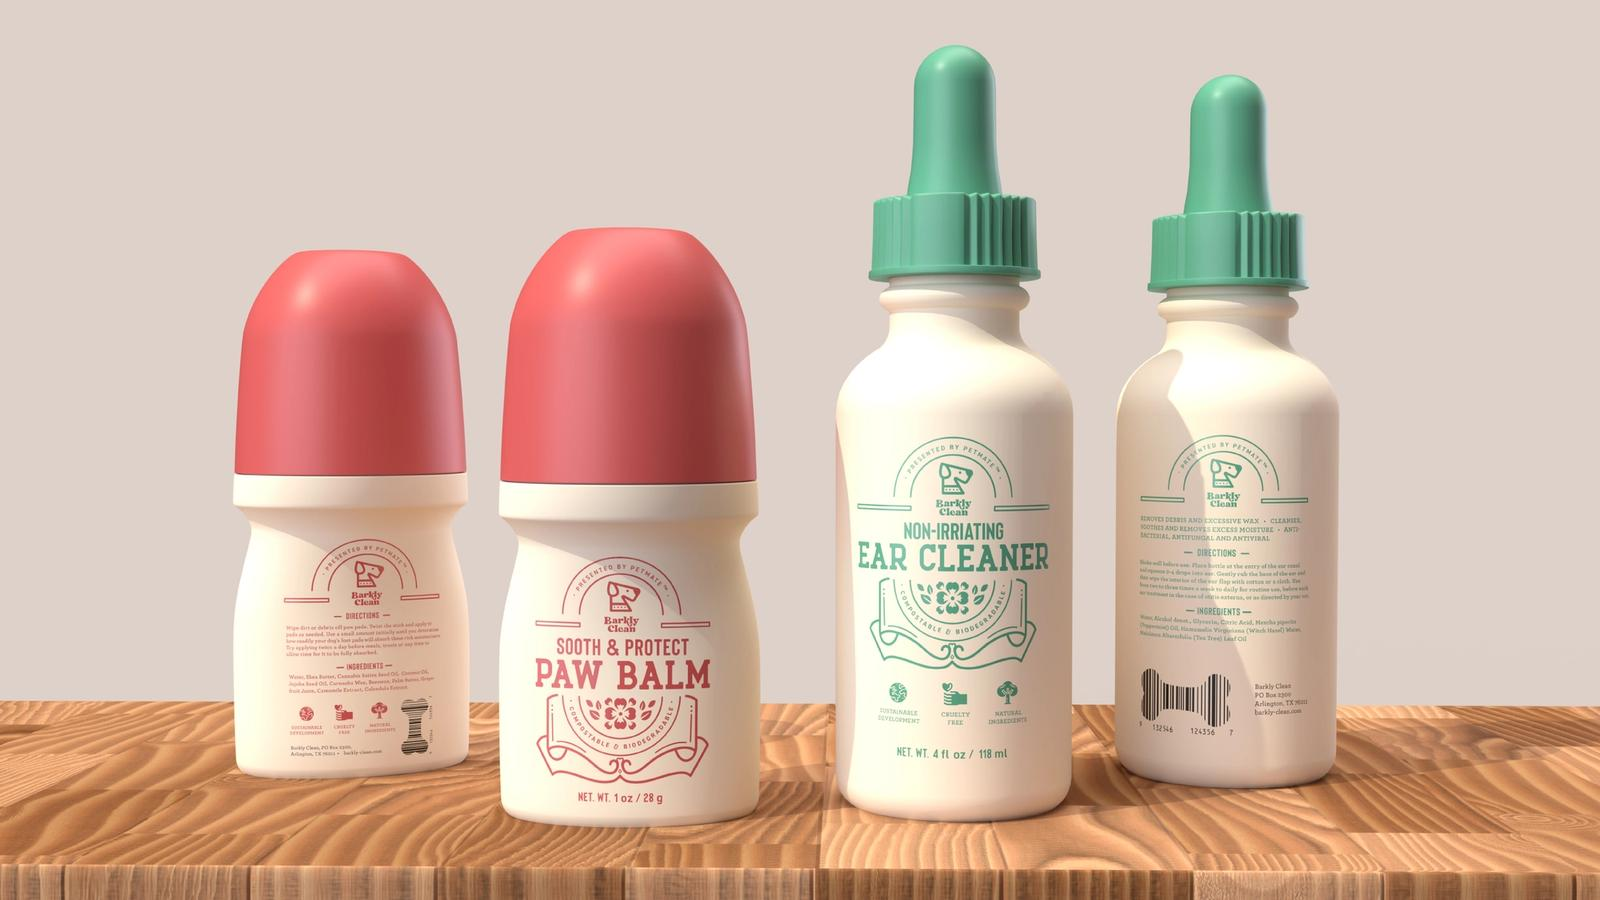 Barkly Clean // Pet Cleaner Packaging